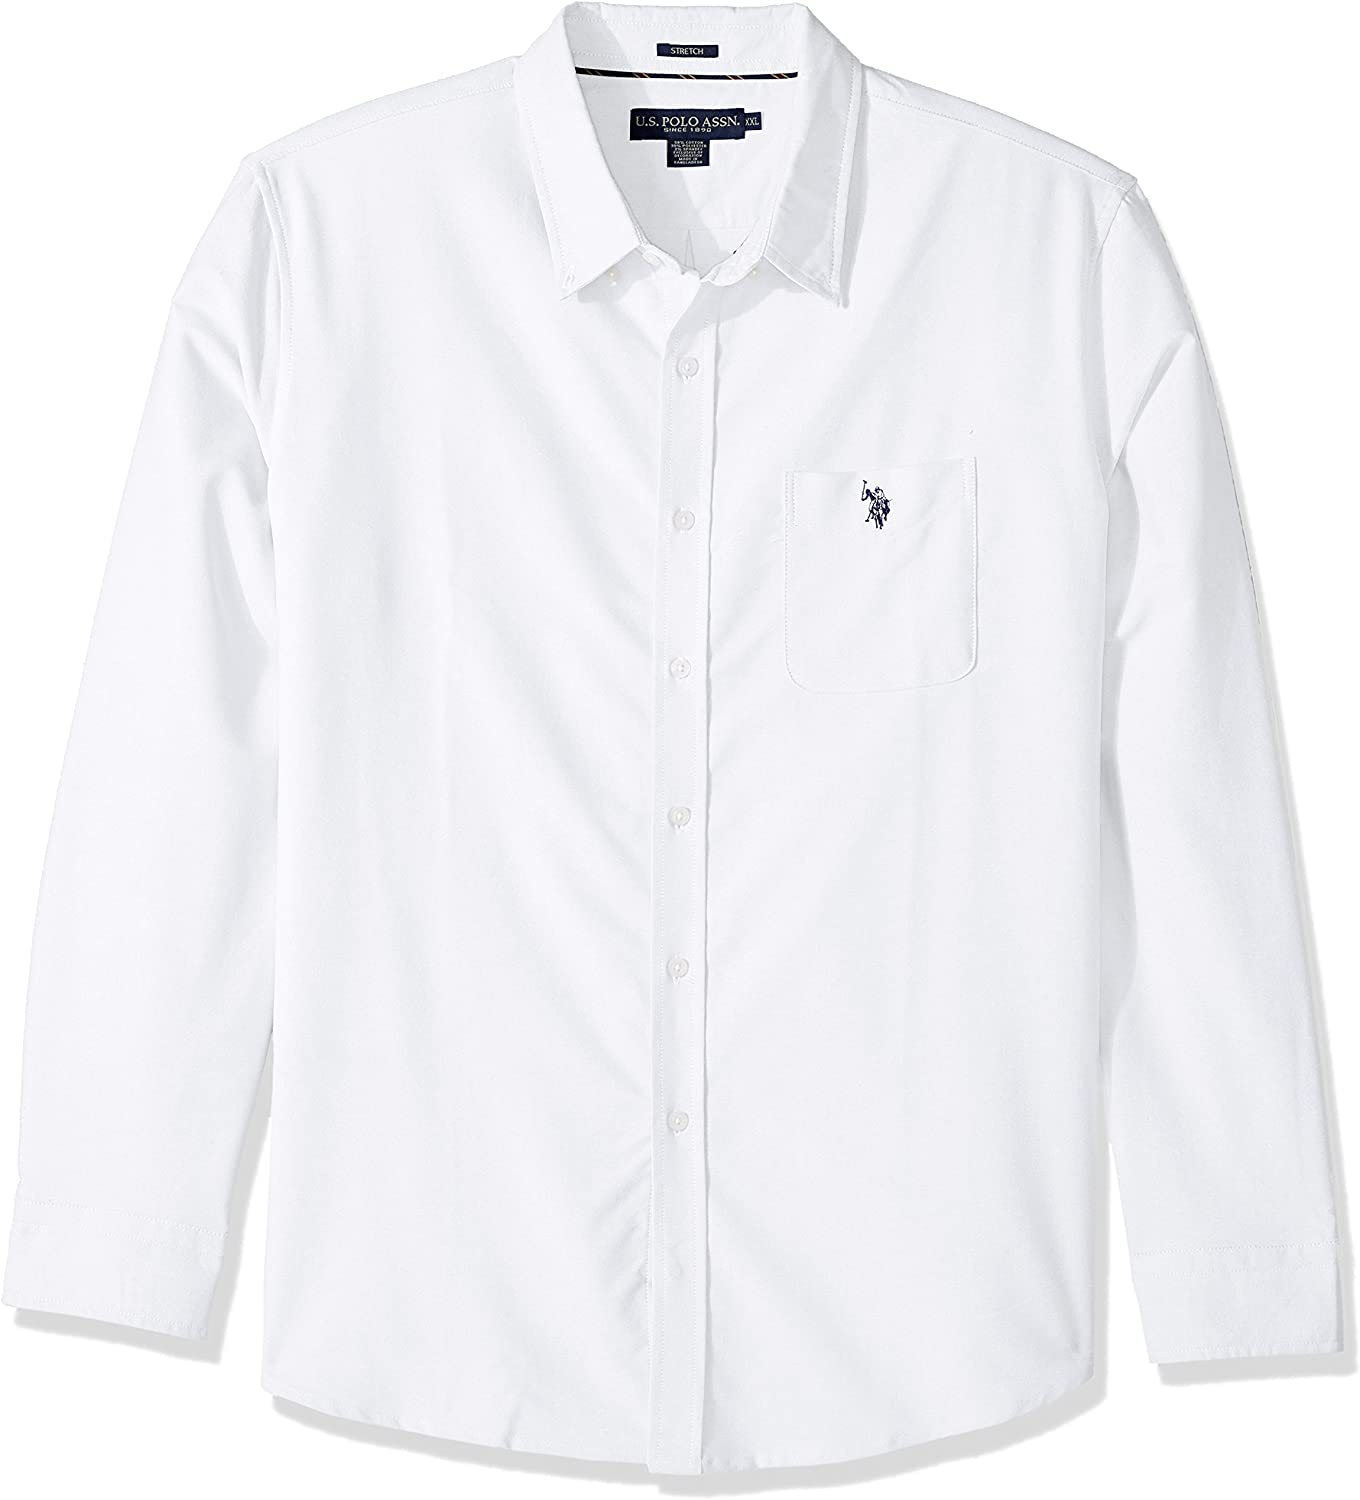 U.S Mens Long Sleeve Classic Fit Solid Shirt Polo Assn